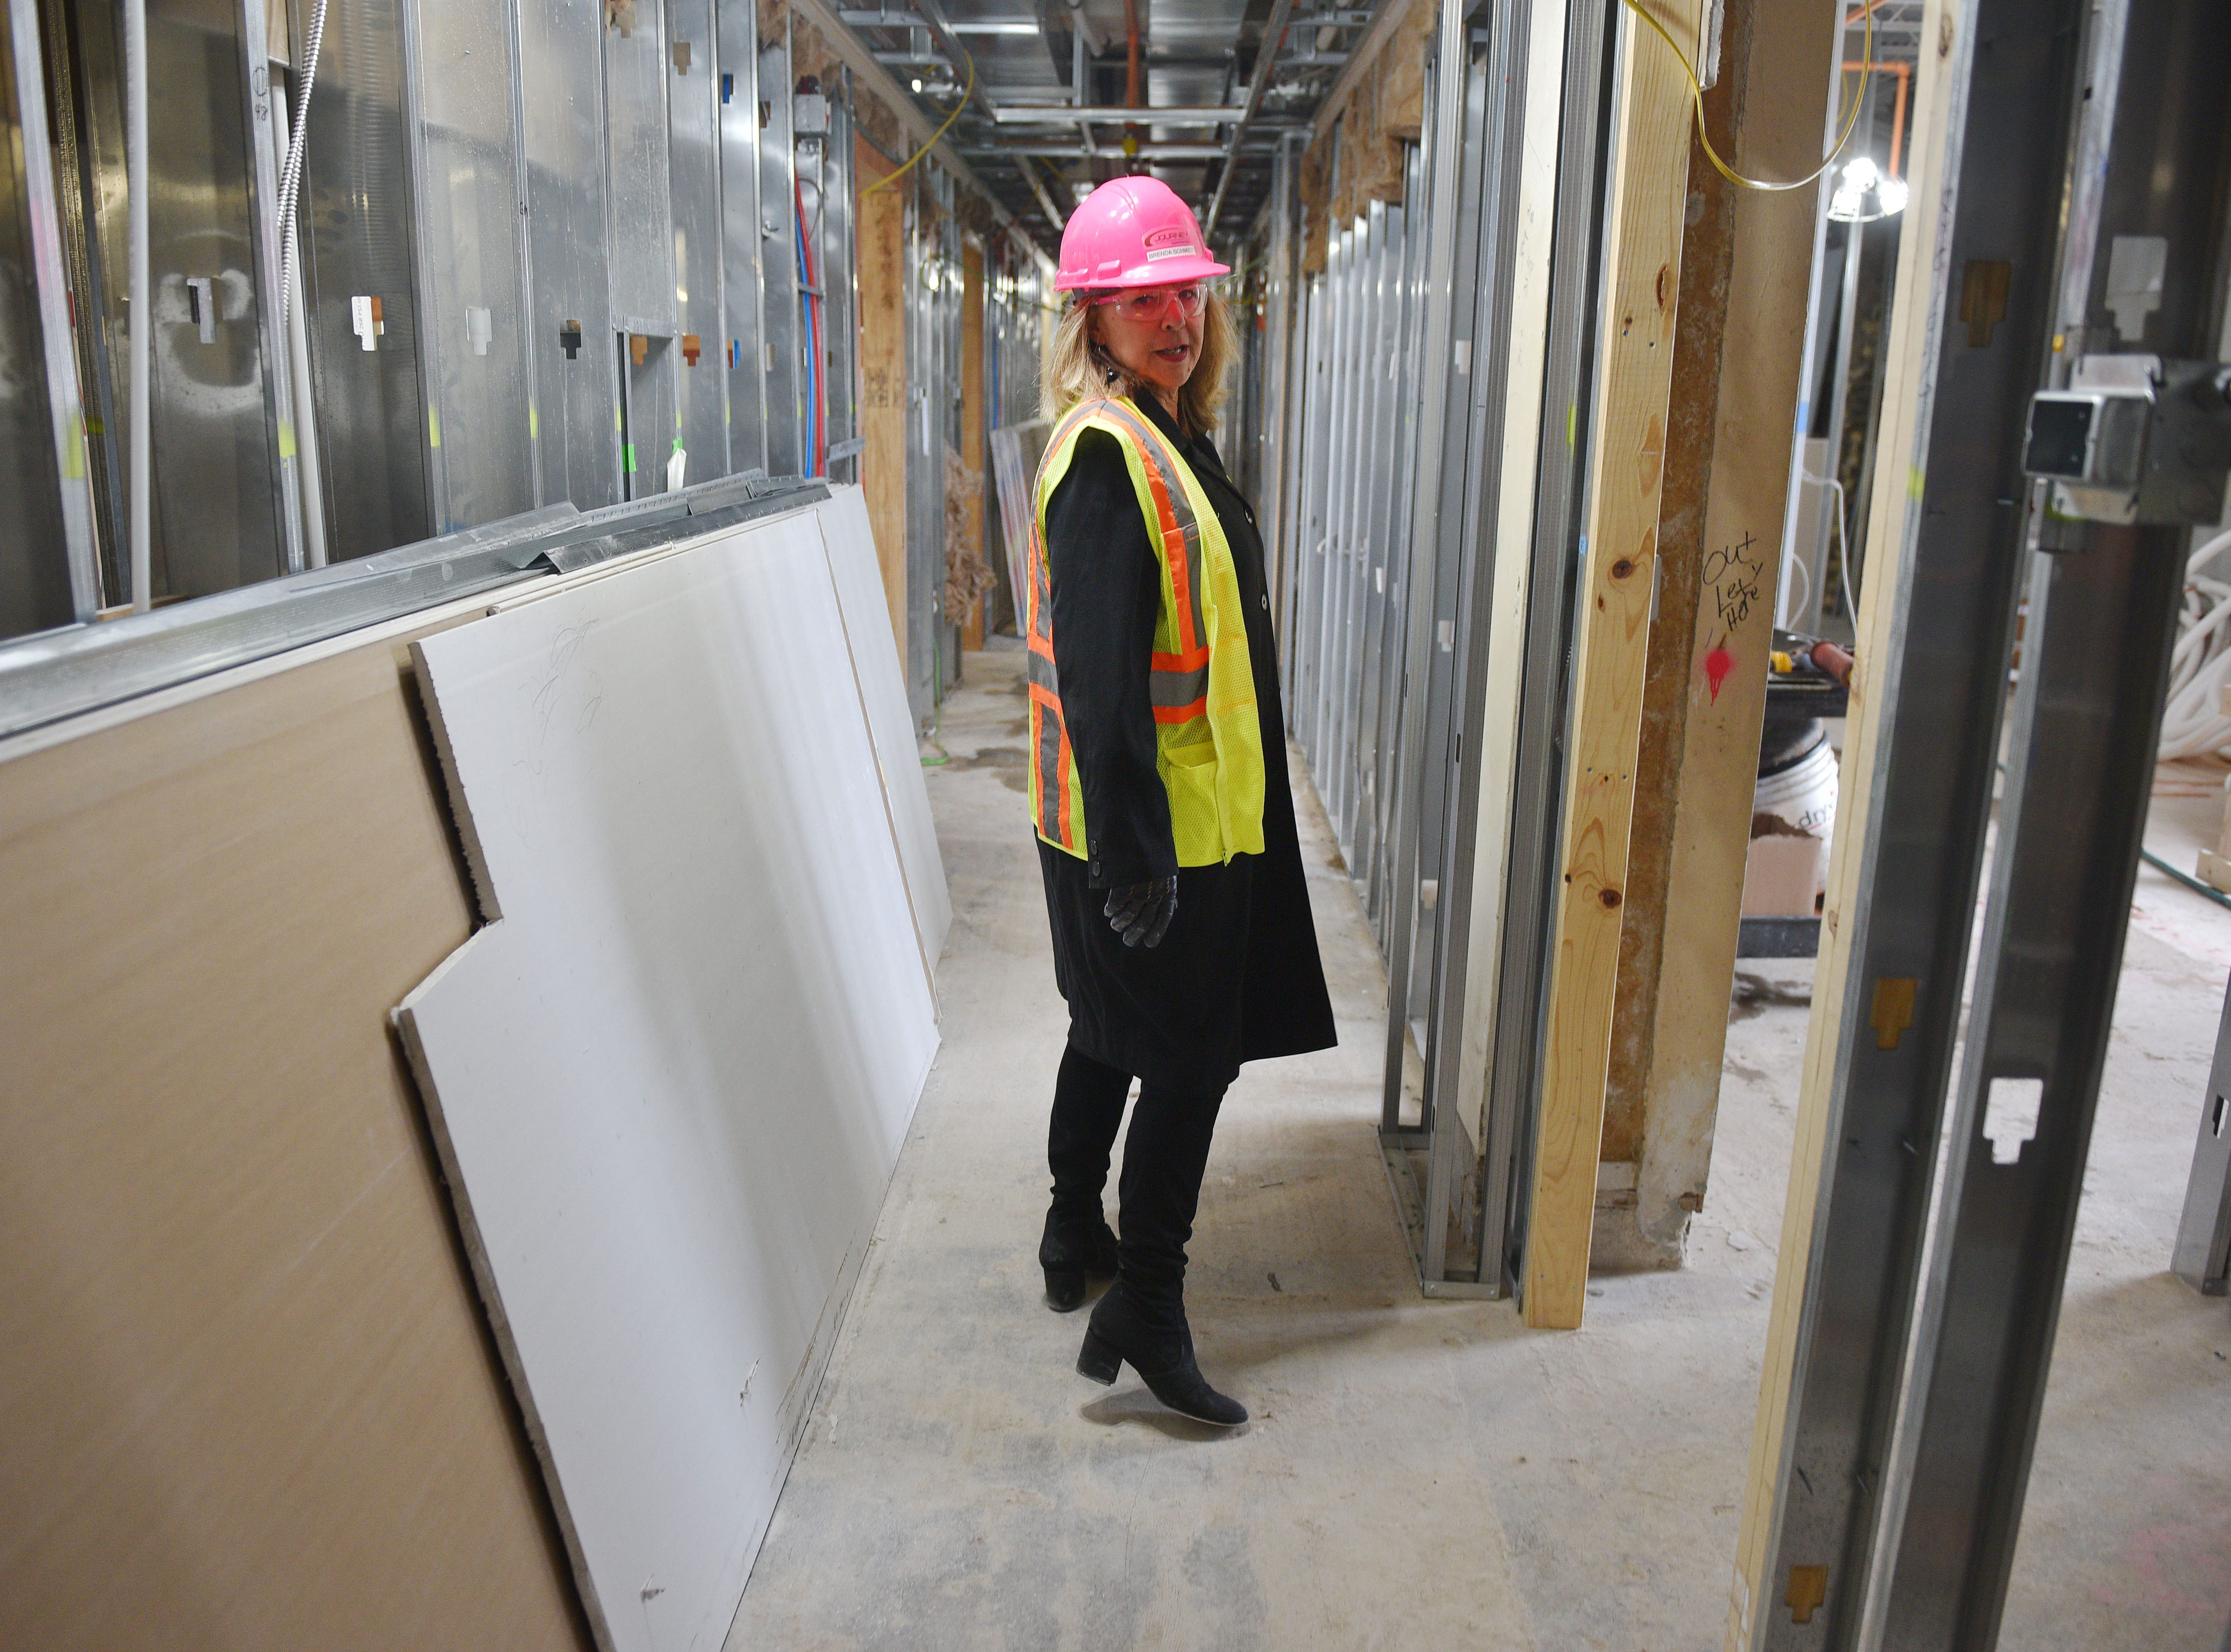 Kelly Inns President and CEO Brenda Schmidt gives a tour of Hotel Phillips during Thursday, Oct. 11, in downtown Sioux Falls. The luxury hotel is an ongoing remodel of the old Great Western building.